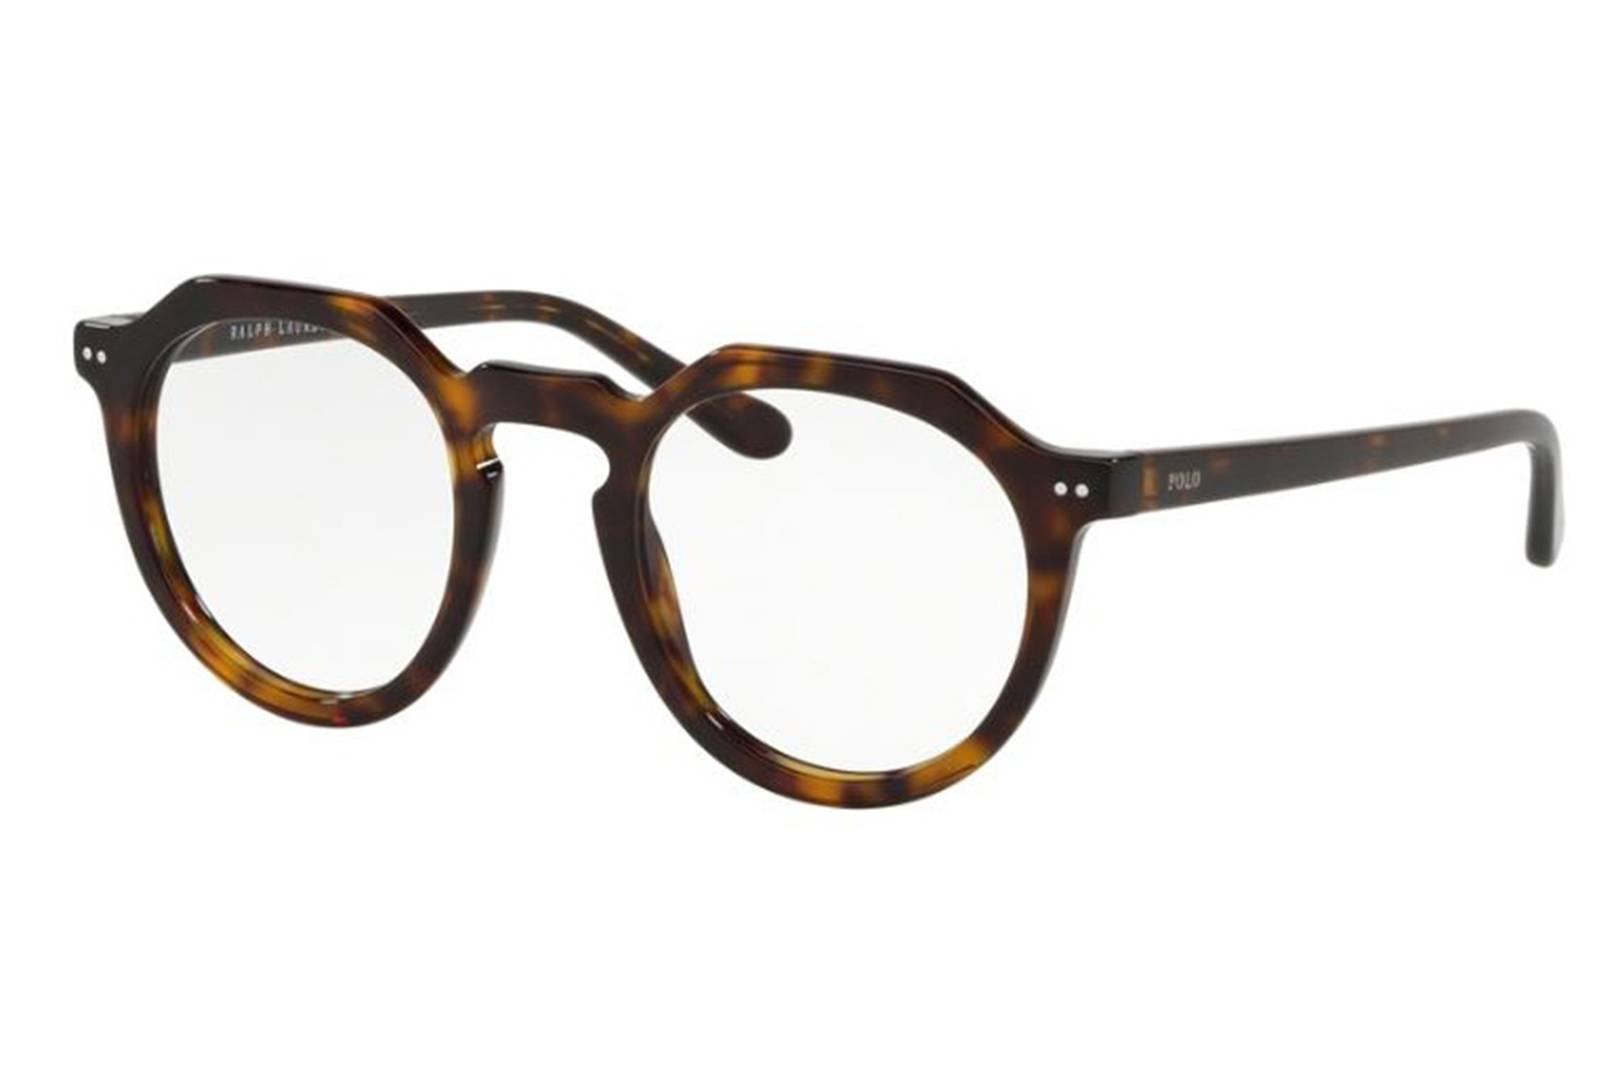 1dcfce8143 Best men s eyeglasses 2019